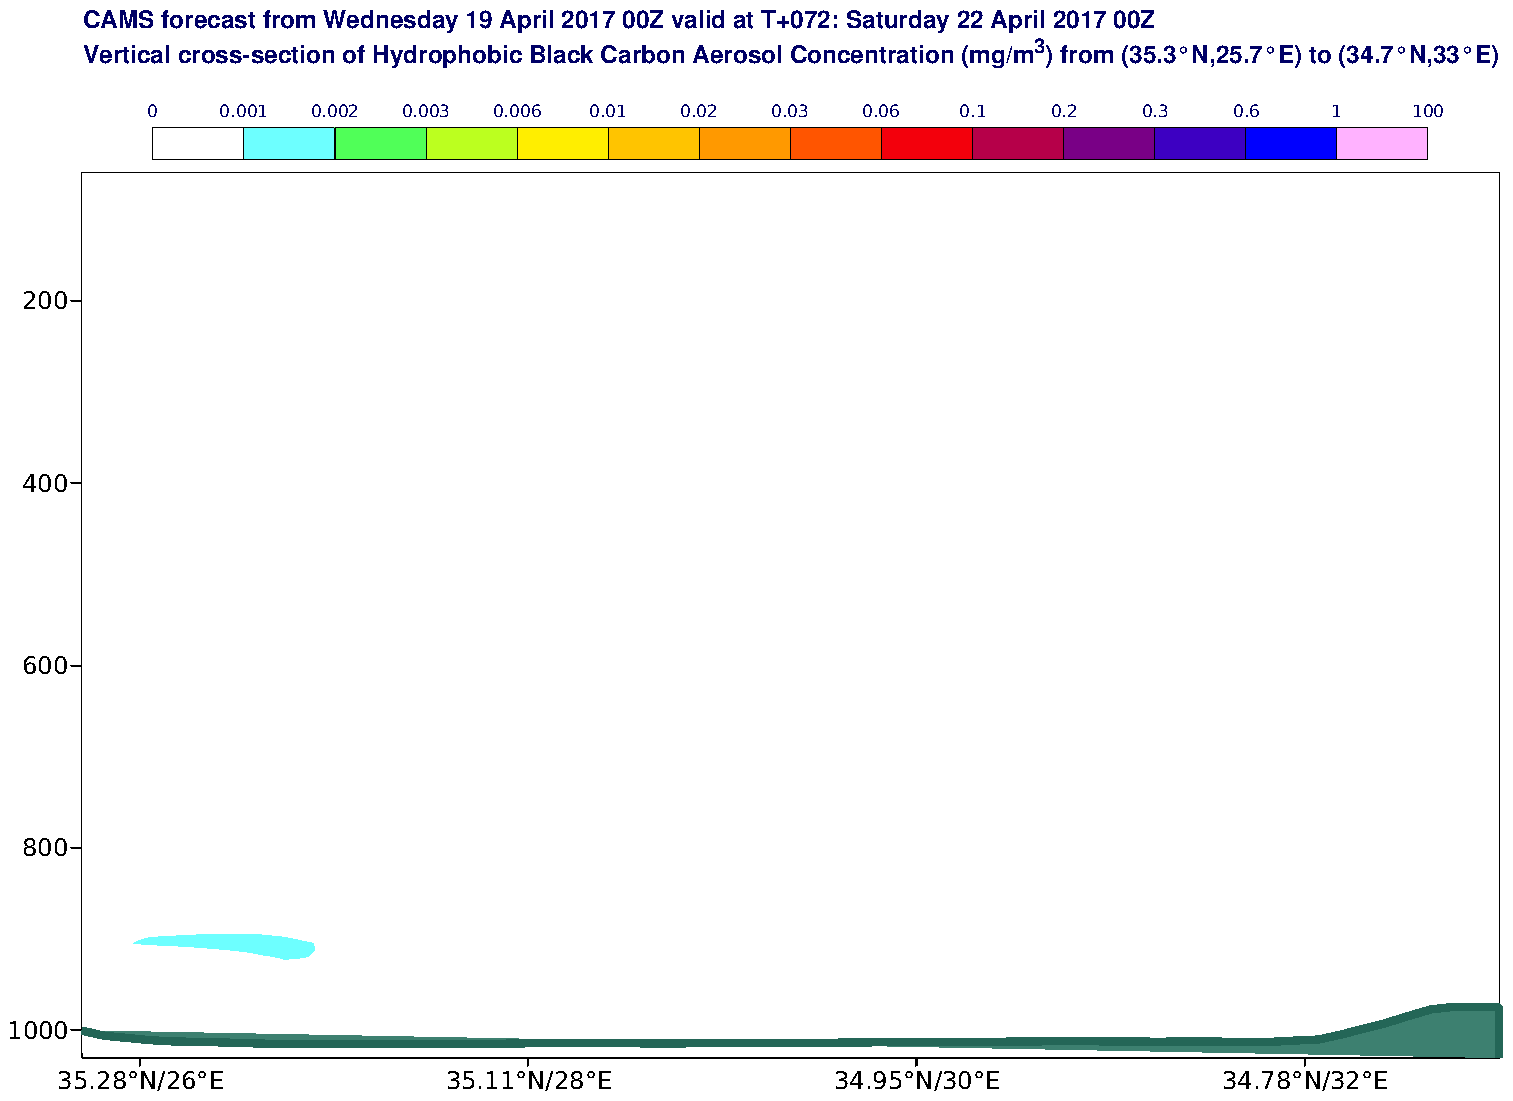 Vertical cross-section of Hydrophobic Black Carbon Aerosol Concentration (mg/m3) valid at T72 - 2017-04-22 00:00